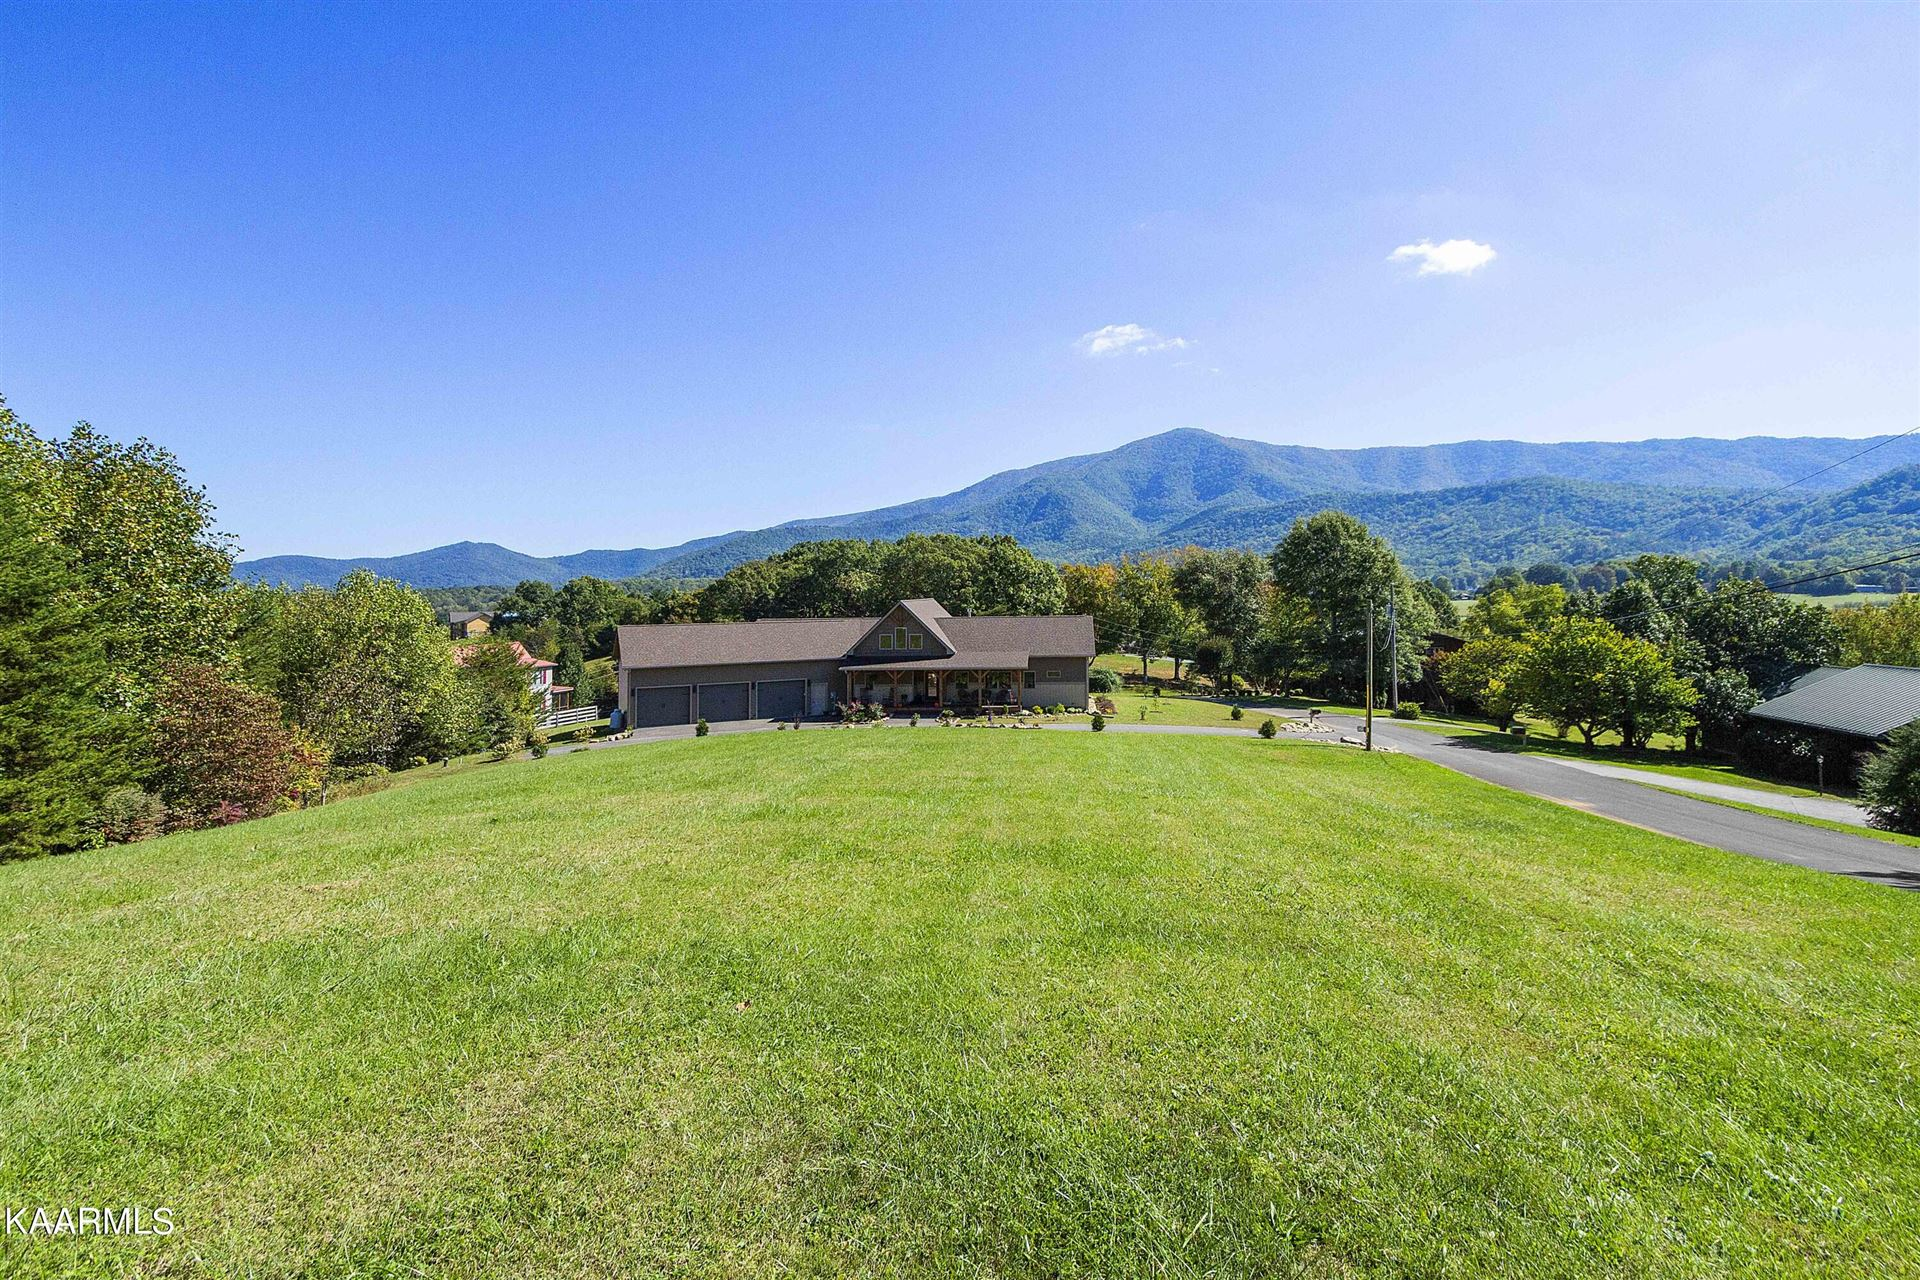 Photo of Westover Drive, Sevierville, TN 37862 (MLS # 1171525)